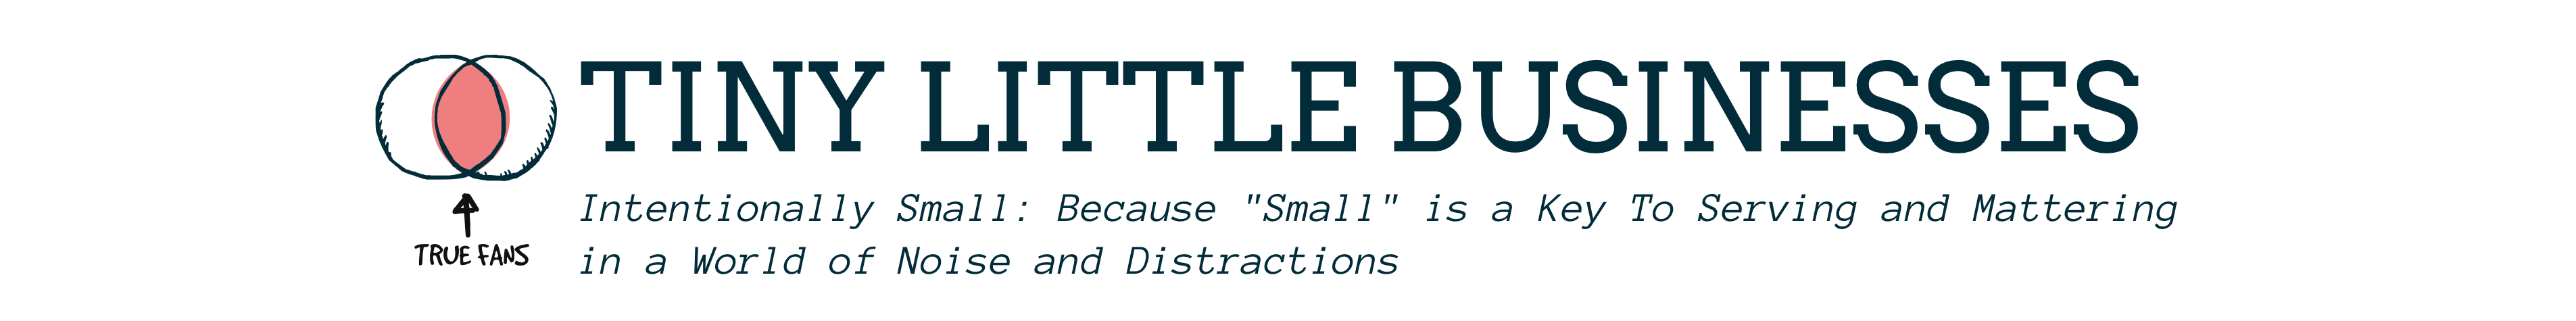 Tiny Little Businesses (TLB) | by André & Anita Chaperon header image